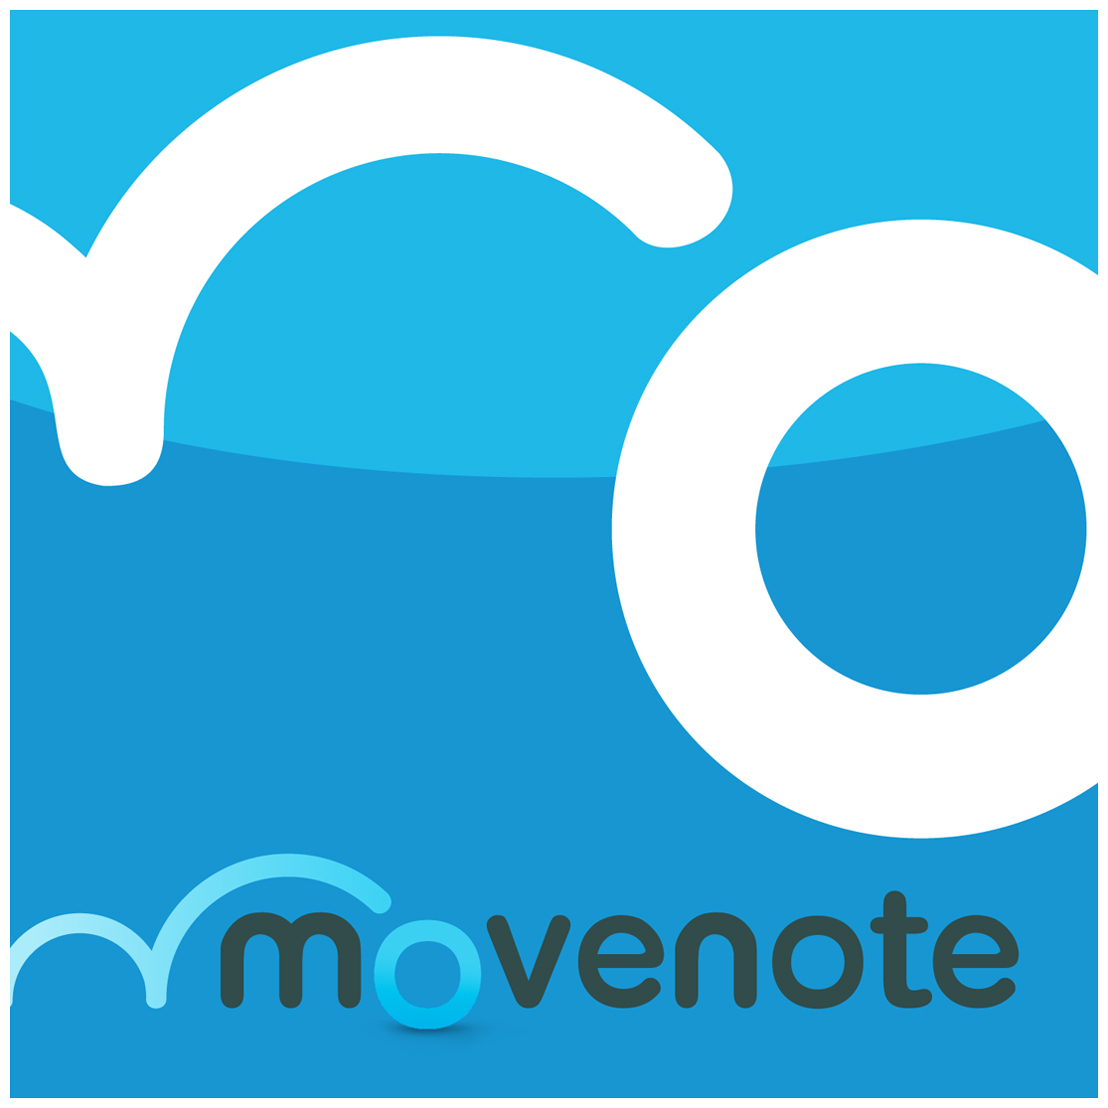 Resource Introduction: MoveNote